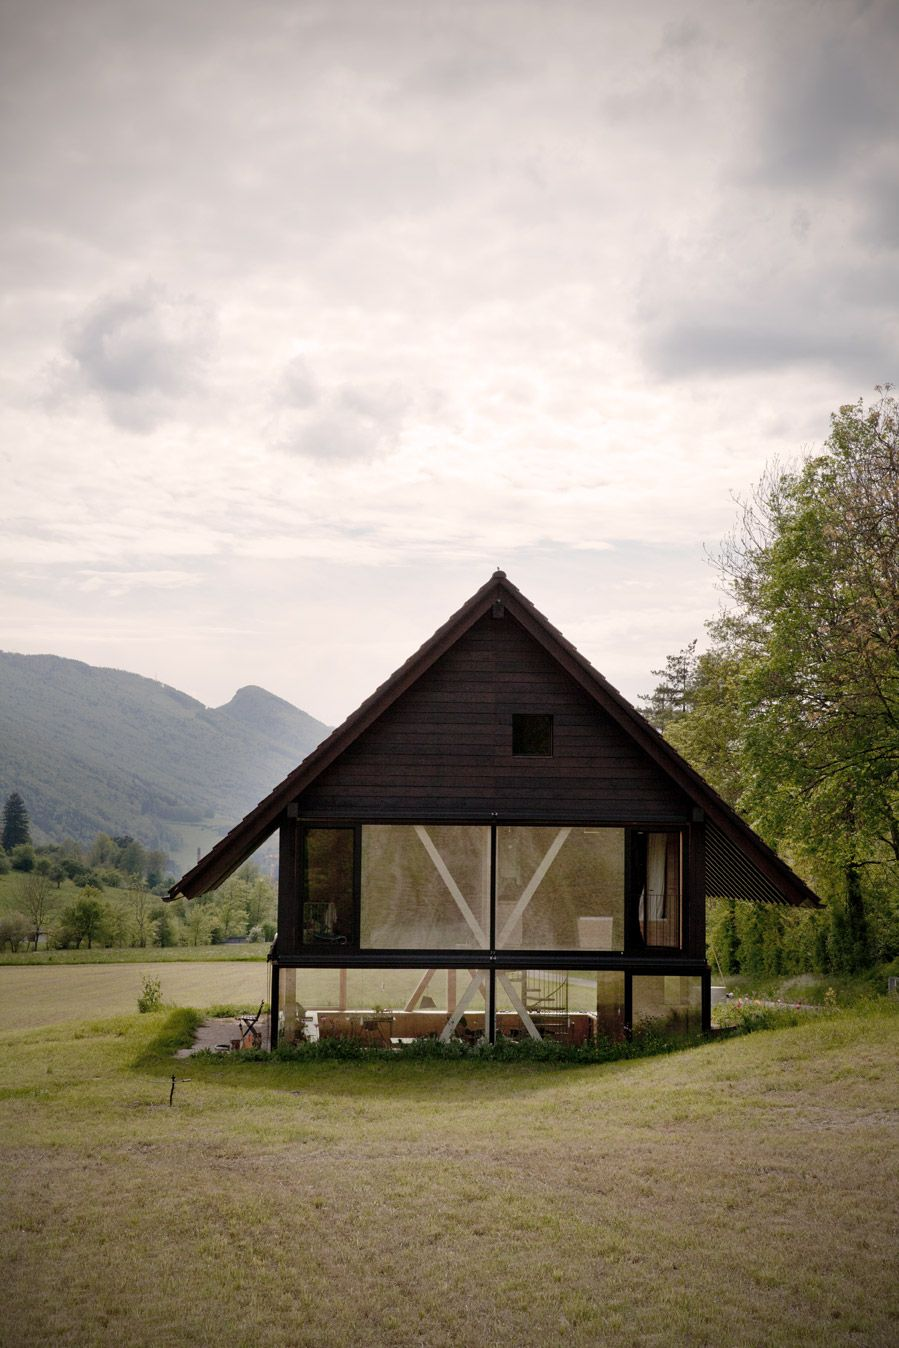 Swiss architect Pascal Flammers house on blog.tagesanzeige... photography: www.palanikumar.ch words: Marianne Kohler